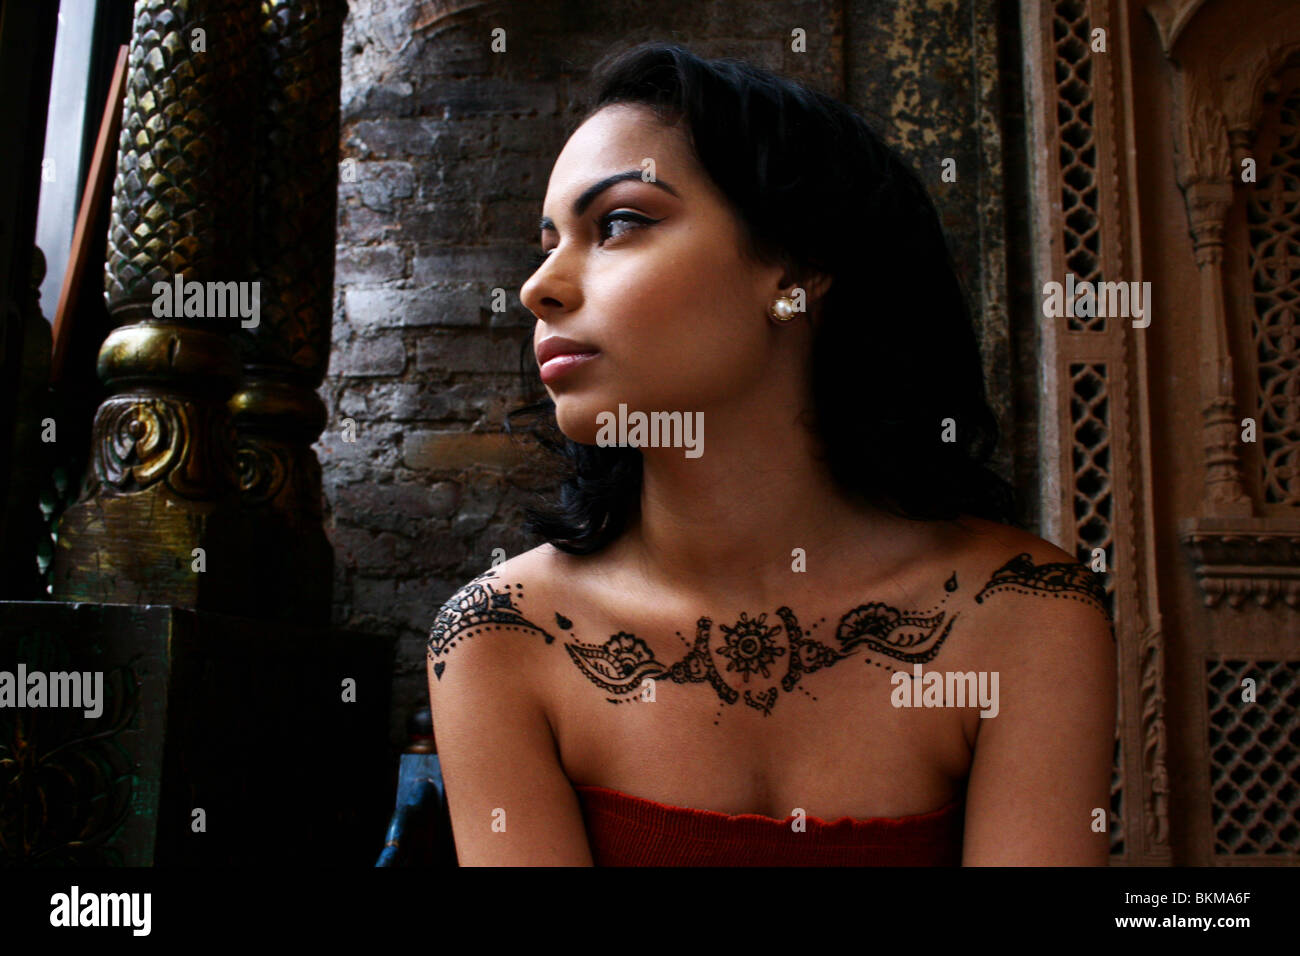 Portrait of woman painted with modern henna design on her shoulders. Stock Foto